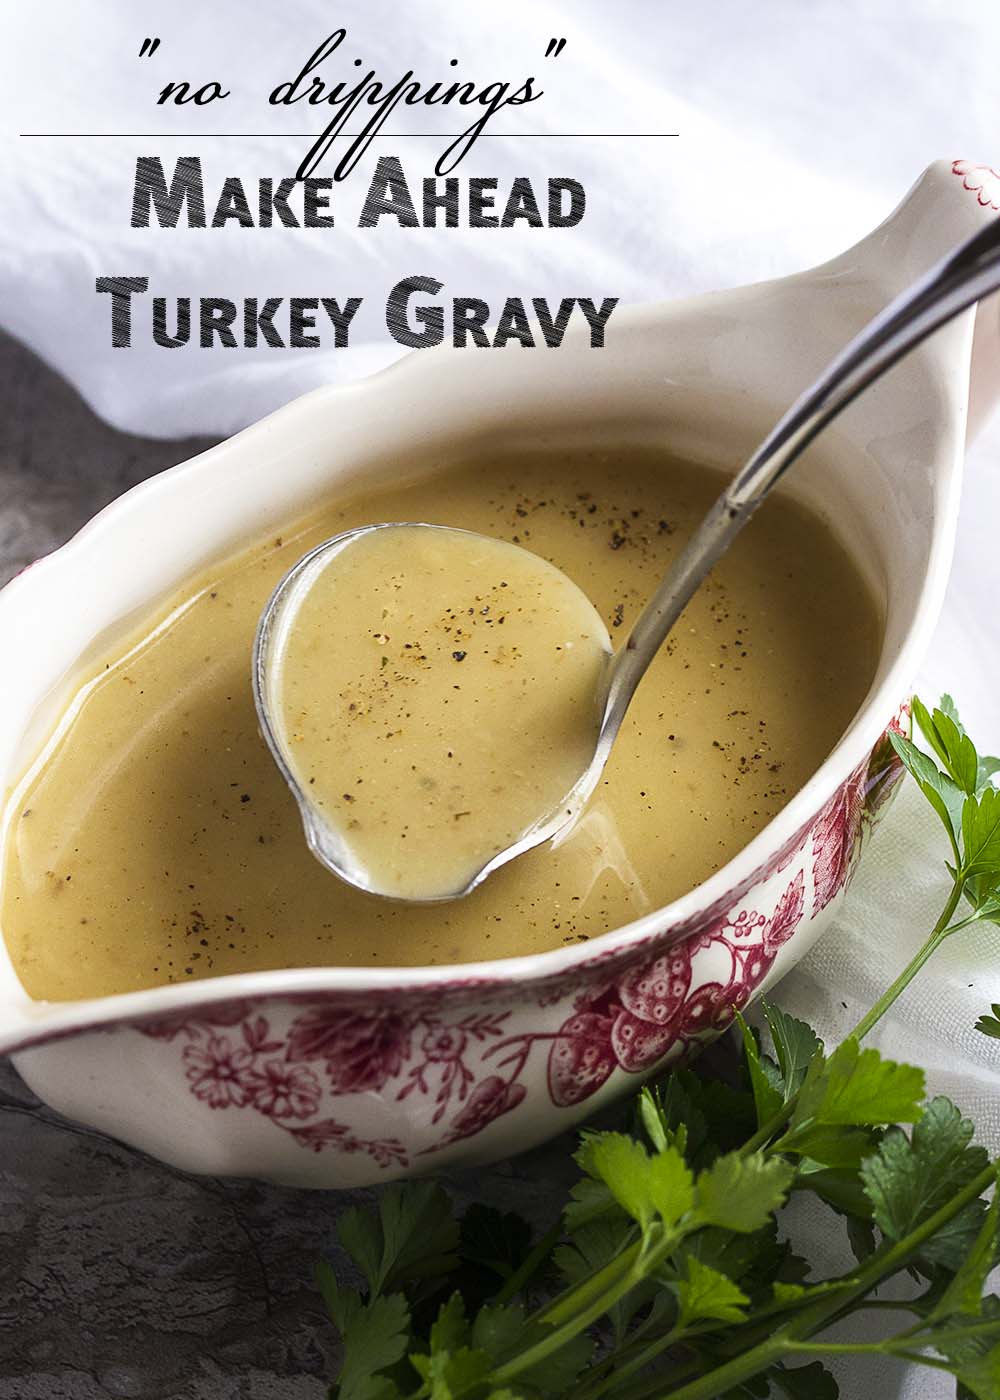 No drippings? No problem! Make this flavorful, rich gravy by layering flavors in your stockpot. Great for make ahead turkey gravy or gravy for grilled/fried turkeys.   justalittlebitofbacon.com